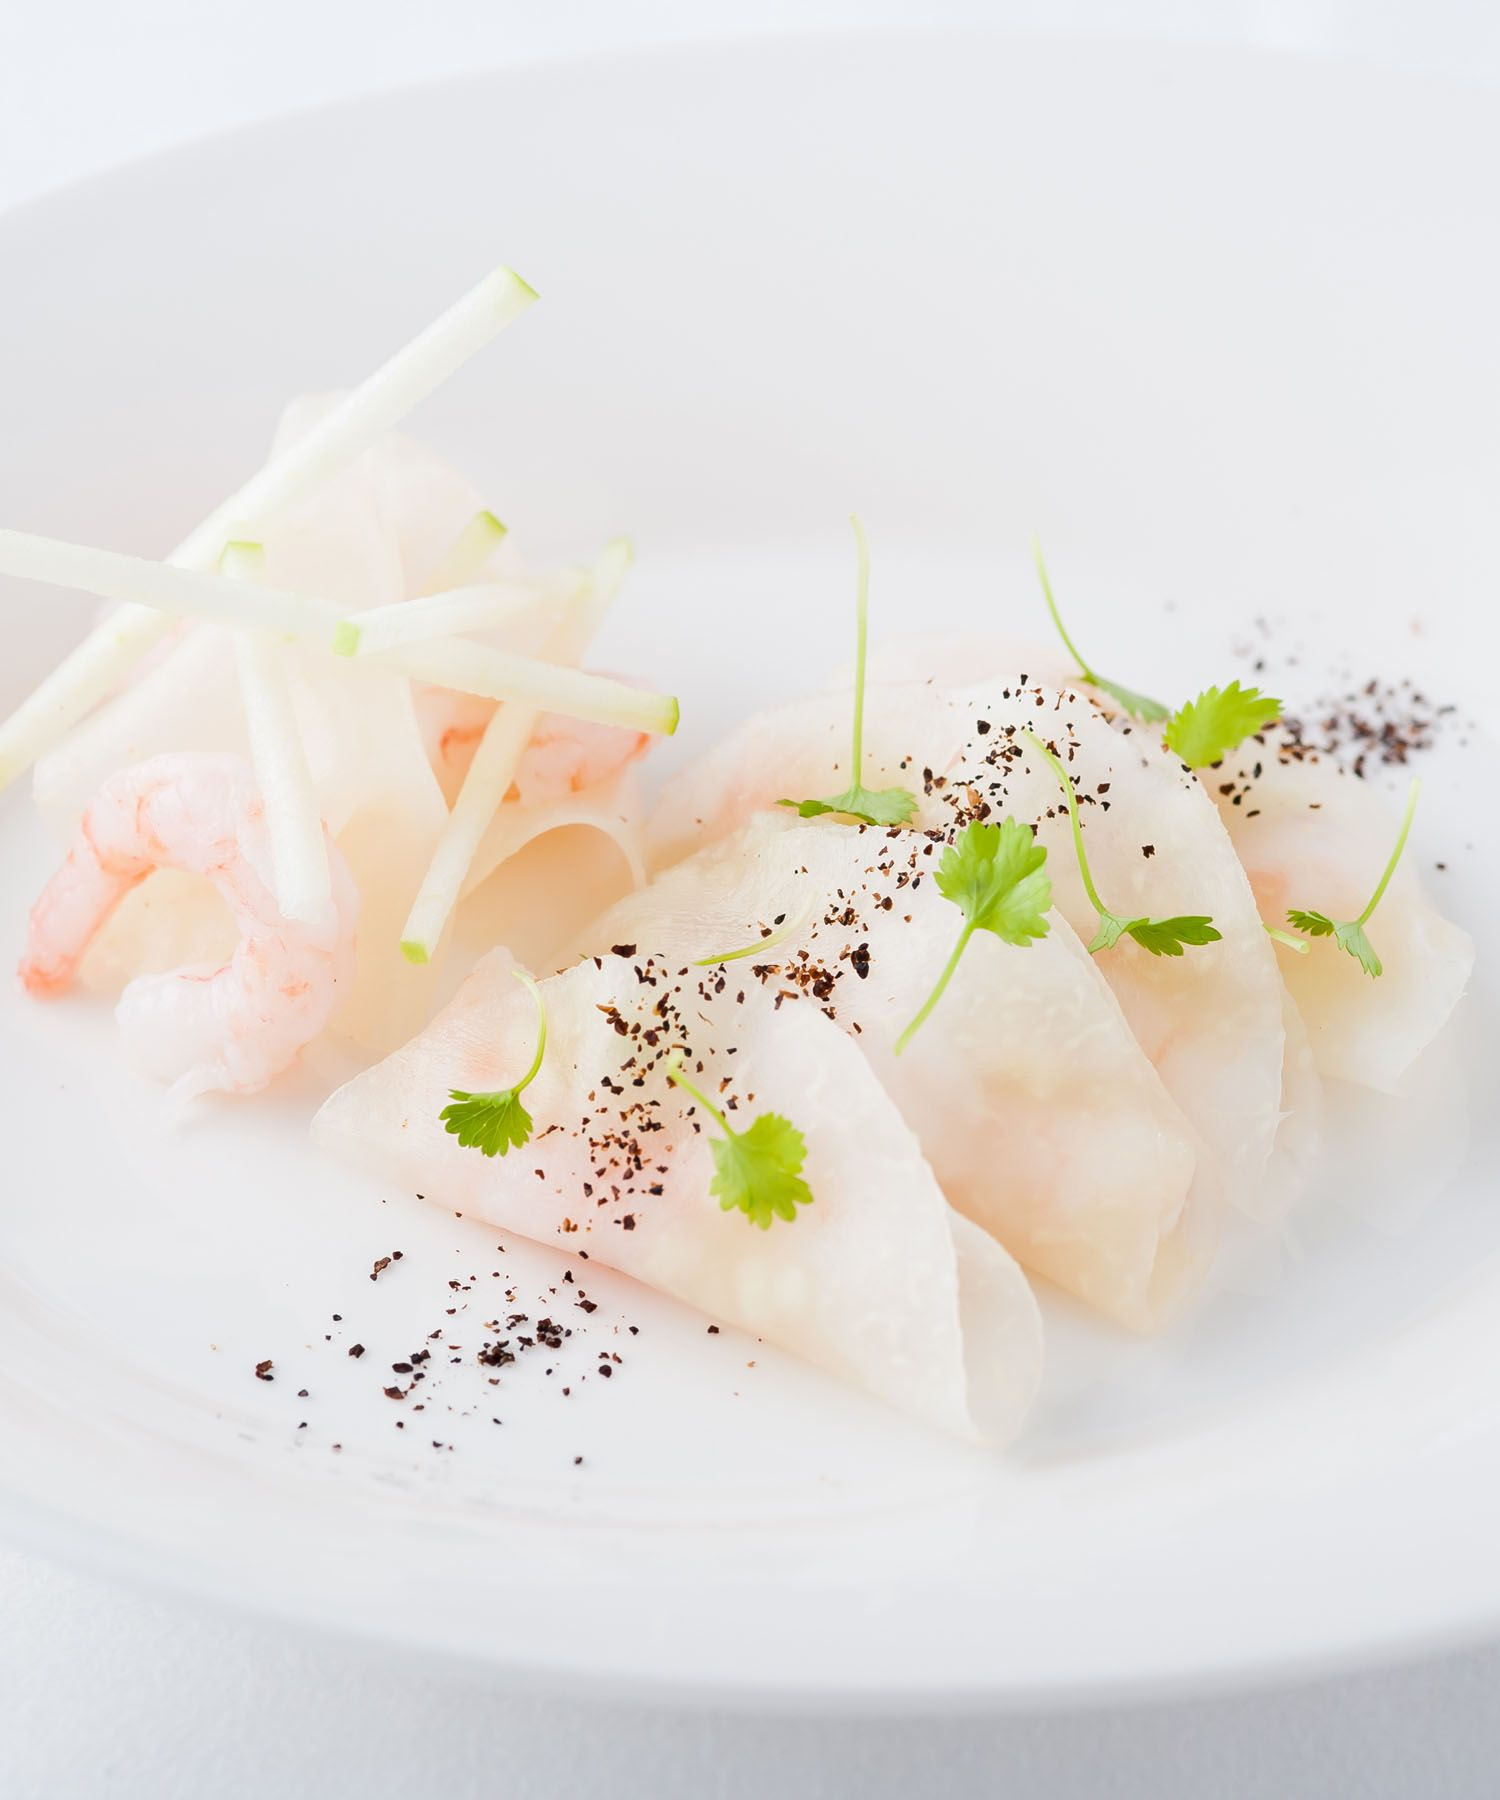 In this delicious prawn starter by Simon Hulstone, sliced kohlrabi is pickled in a vacuum bag to give the vegetable a soft, malleable texture. This process enables the kohlrabi slices to be used like tacos, which the chef fills with a delicately balanced combination of apple purée, lemon peel, prawn and Nepalese pepper. If available, Simon Hulstone recommends using Norwegian prawns, although king prawns will work just as well.